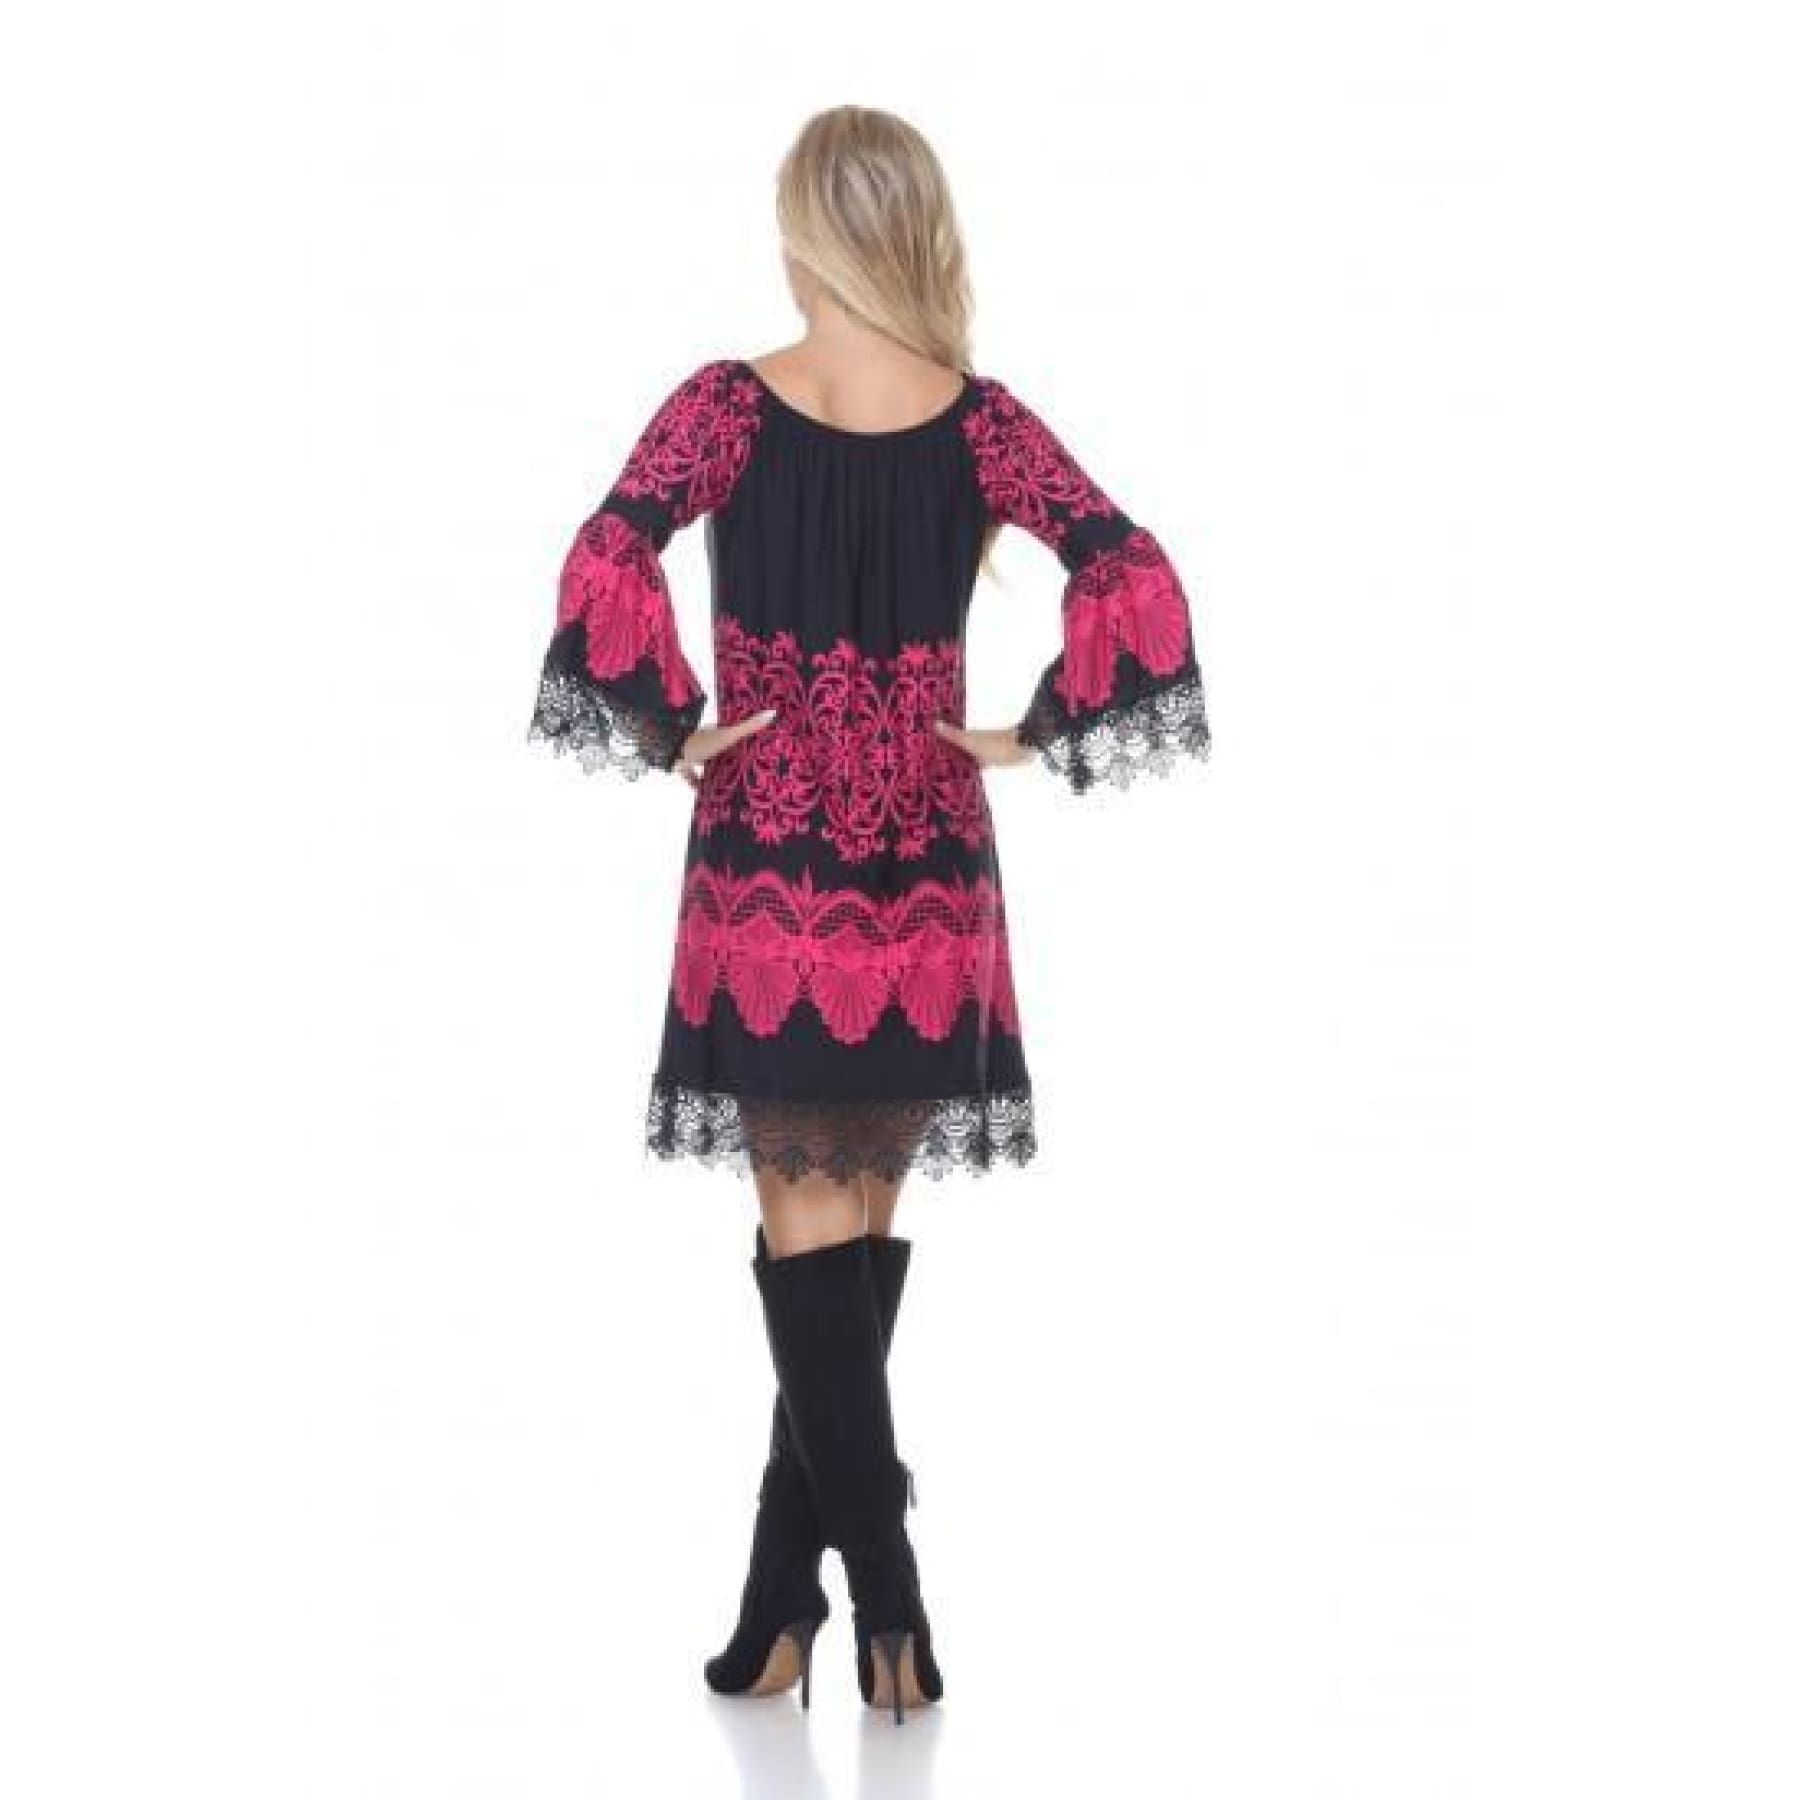 Hill Country Lace Sleeve Dress in Raspberry and Black - Dress